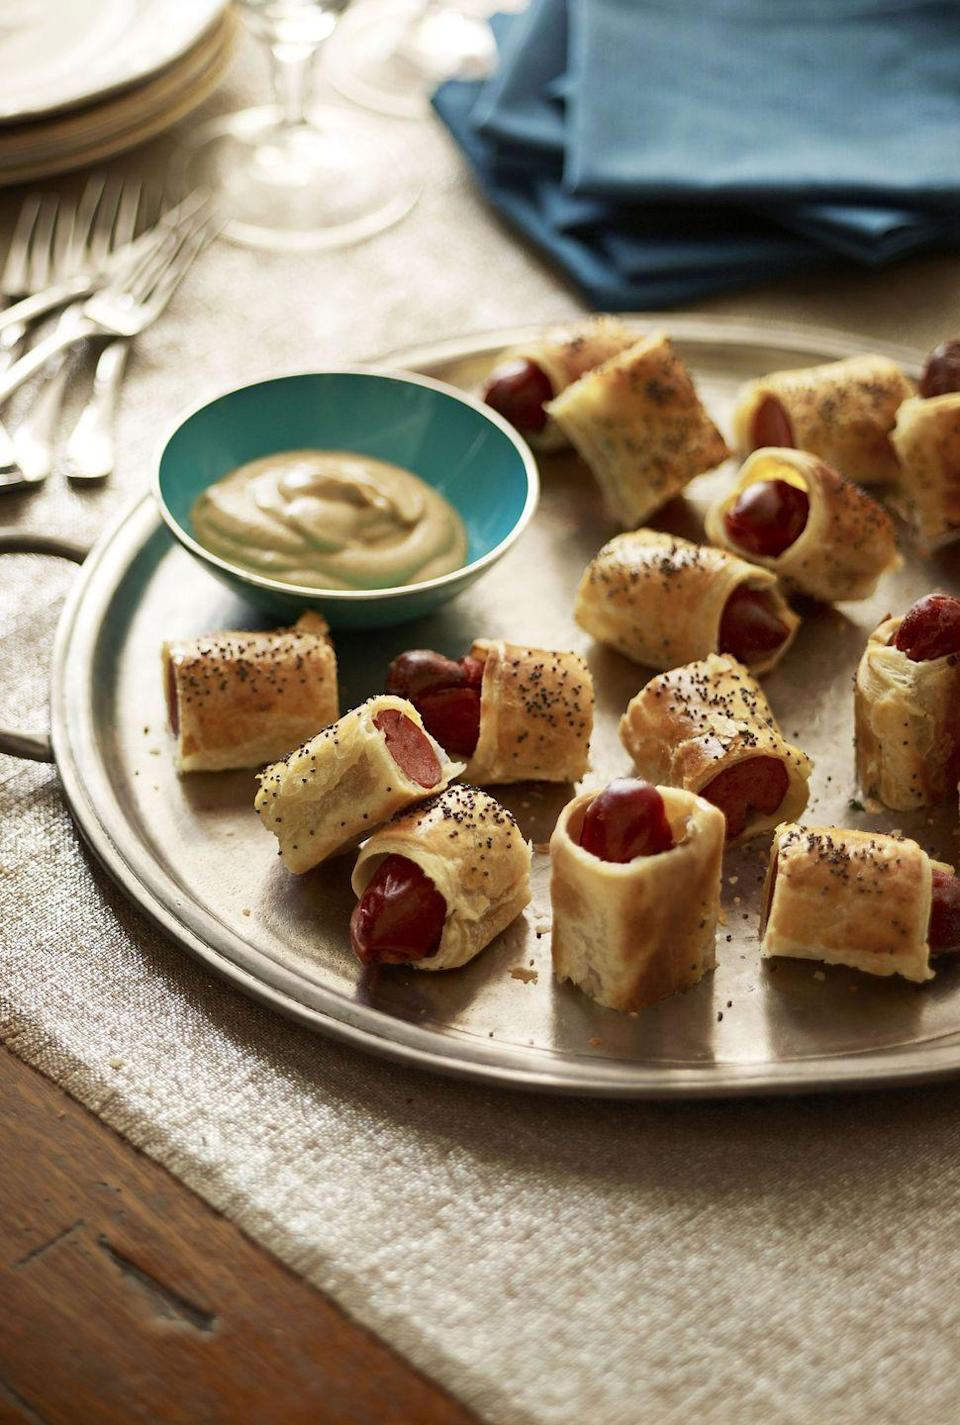 """<p>Some classics never fail to score with the party crowd. And they're so simple to make that it's a win-win. </p><p><strong><a href=""""https://www.countryliving.com/food-drinks/recipes/a3263/pigs-in-blanket-recipe/"""" rel=""""nofollow noopener"""" target=""""_blank"""" data-ylk=""""slk:Get the recipe"""" class=""""link rapid-noclick-resp"""">Get the recipe</a>.</strong></p>"""